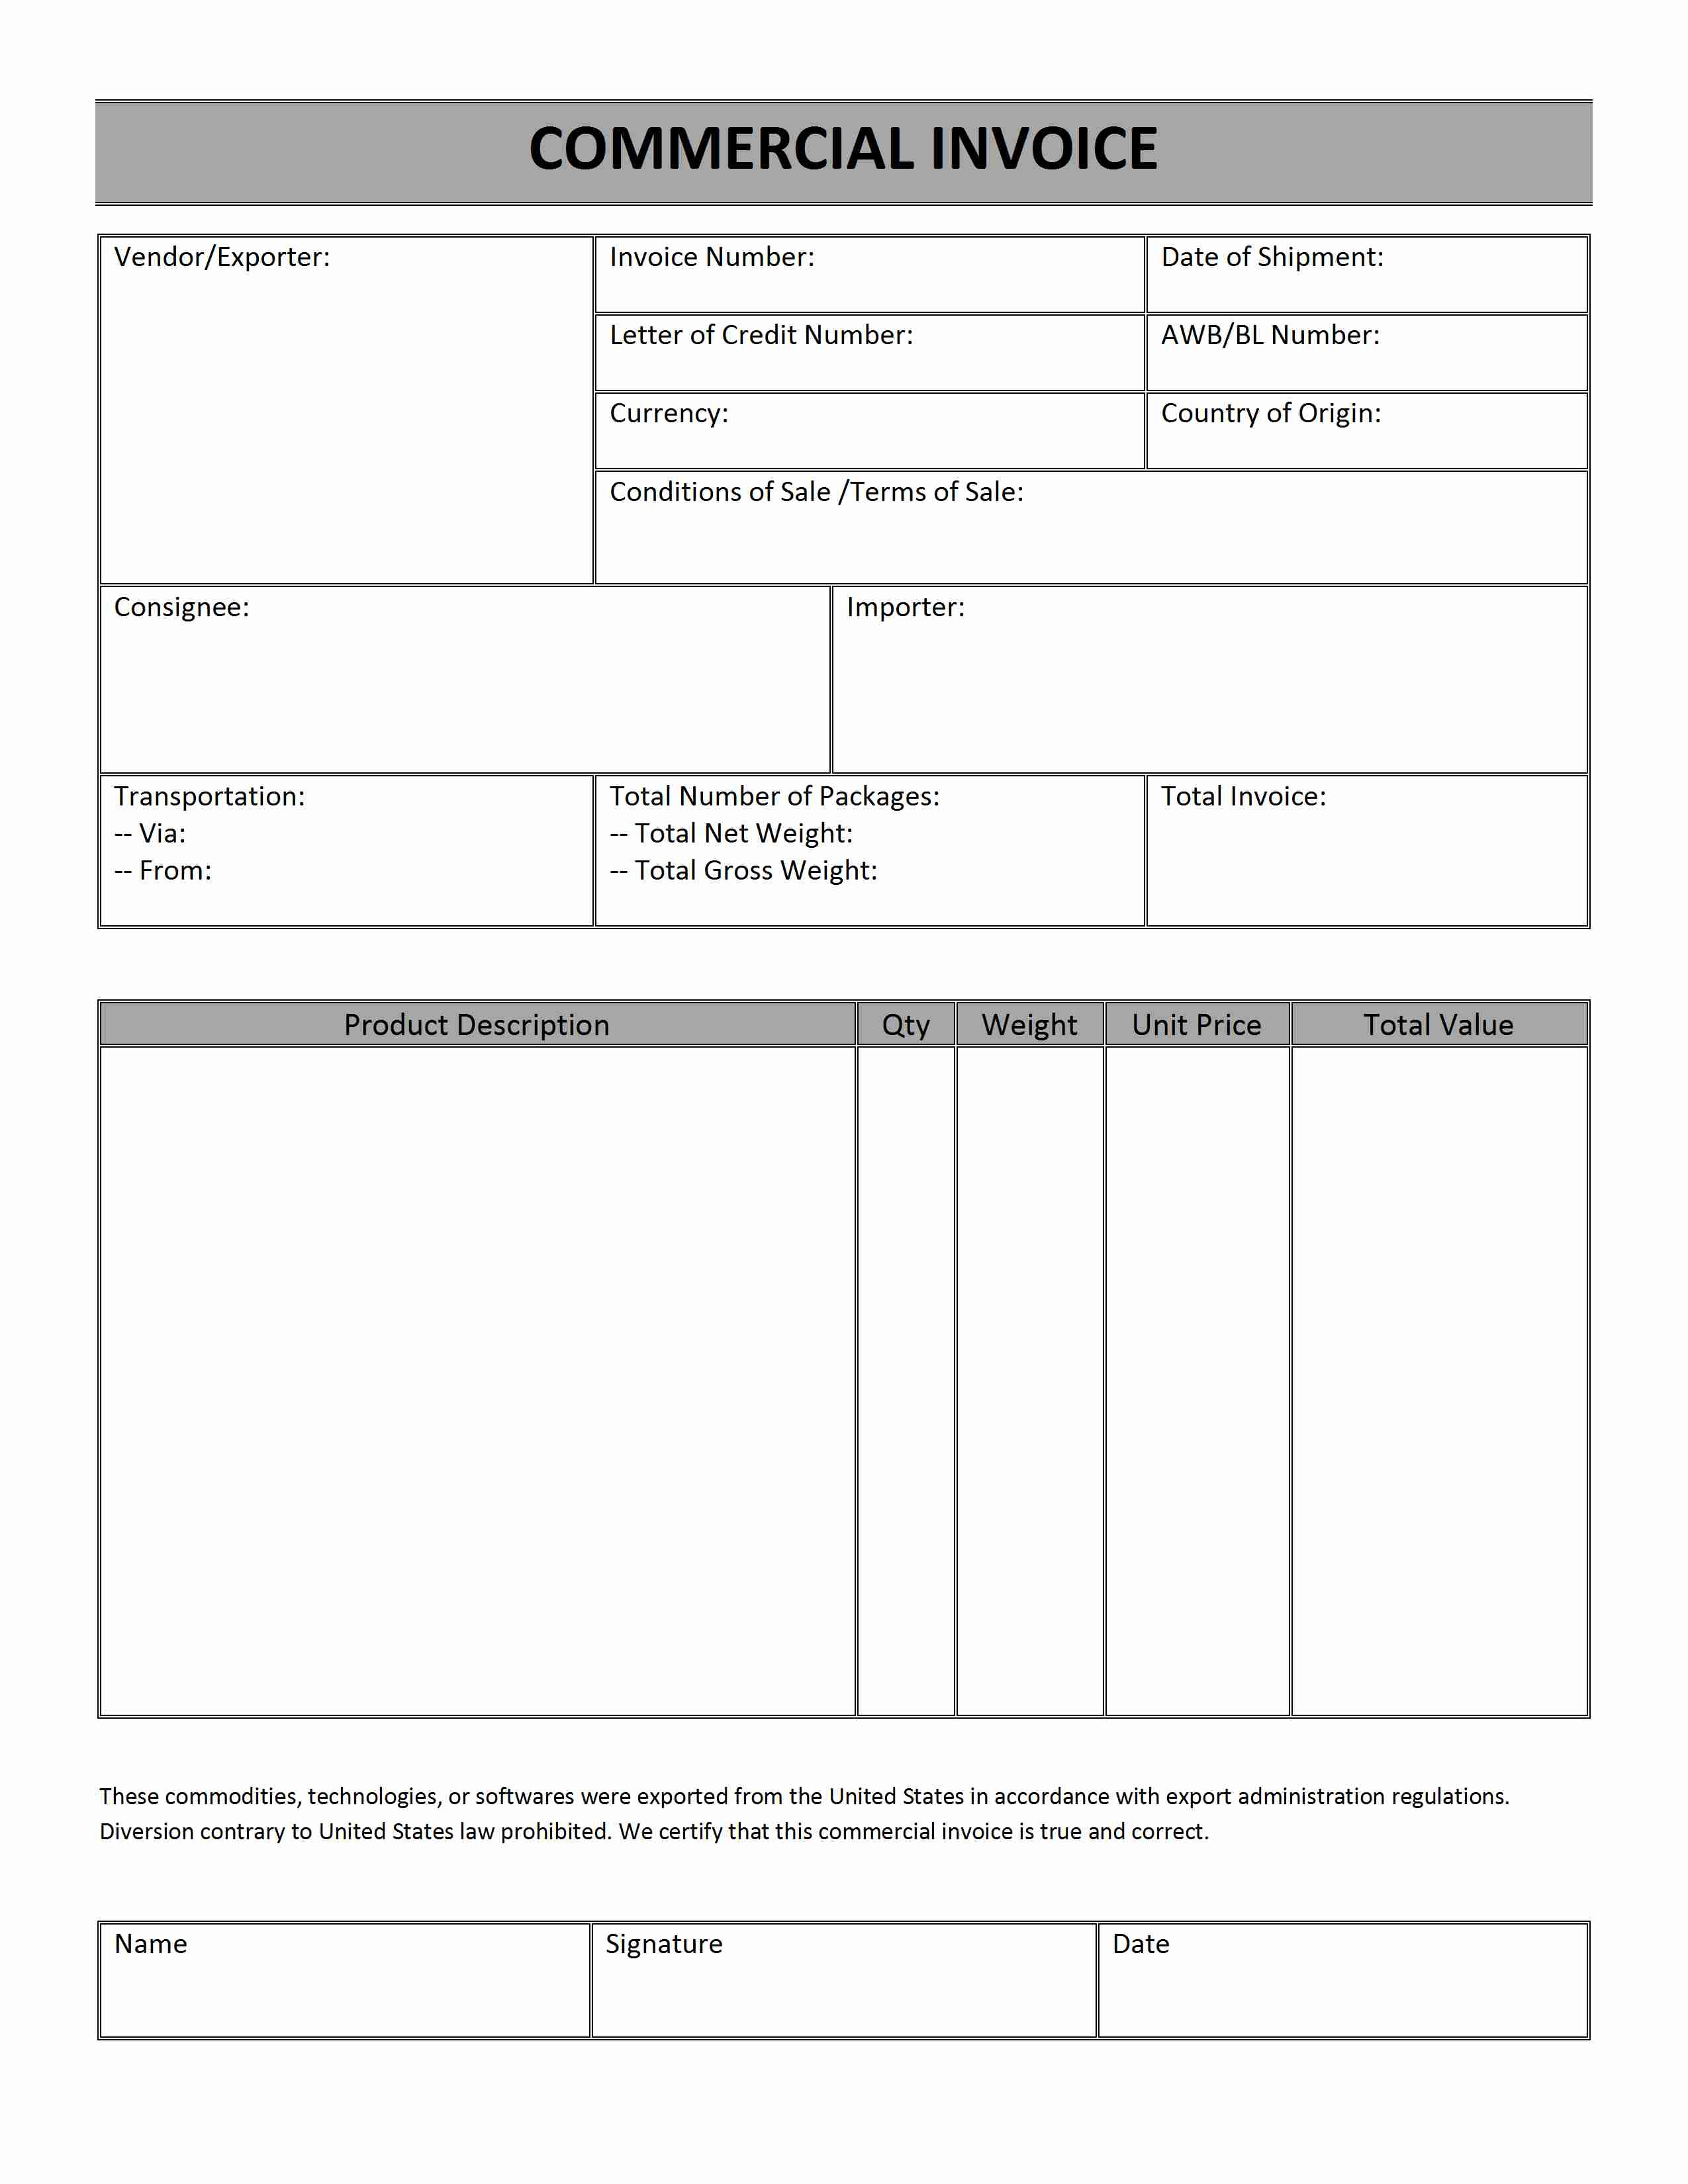 Usdgus  Outstanding Printable Sales Invoice Simple Invoice Form Free Invoice  With Marvelous Printable Receipt Free  Free Printable Raffle Tickets  Receipt   Printable With Easy On The Eye Carbon Invoices Also How To Set Up An Invoice In Addition Customer Invoice Template And Job Invoice Forms As Well As Aynax Invoice Template Additionally Blank Printable Invoice Template Free From Happytomco With Usdgus  Marvelous Printable Sales Invoice Simple Invoice Form Free Invoice  With Easy On The Eye Printable Receipt Free  Free Printable Raffle Tickets  Receipt   Printable And Outstanding Carbon Invoices Also How To Set Up An Invoice In Addition Customer Invoice Template From Happytomco